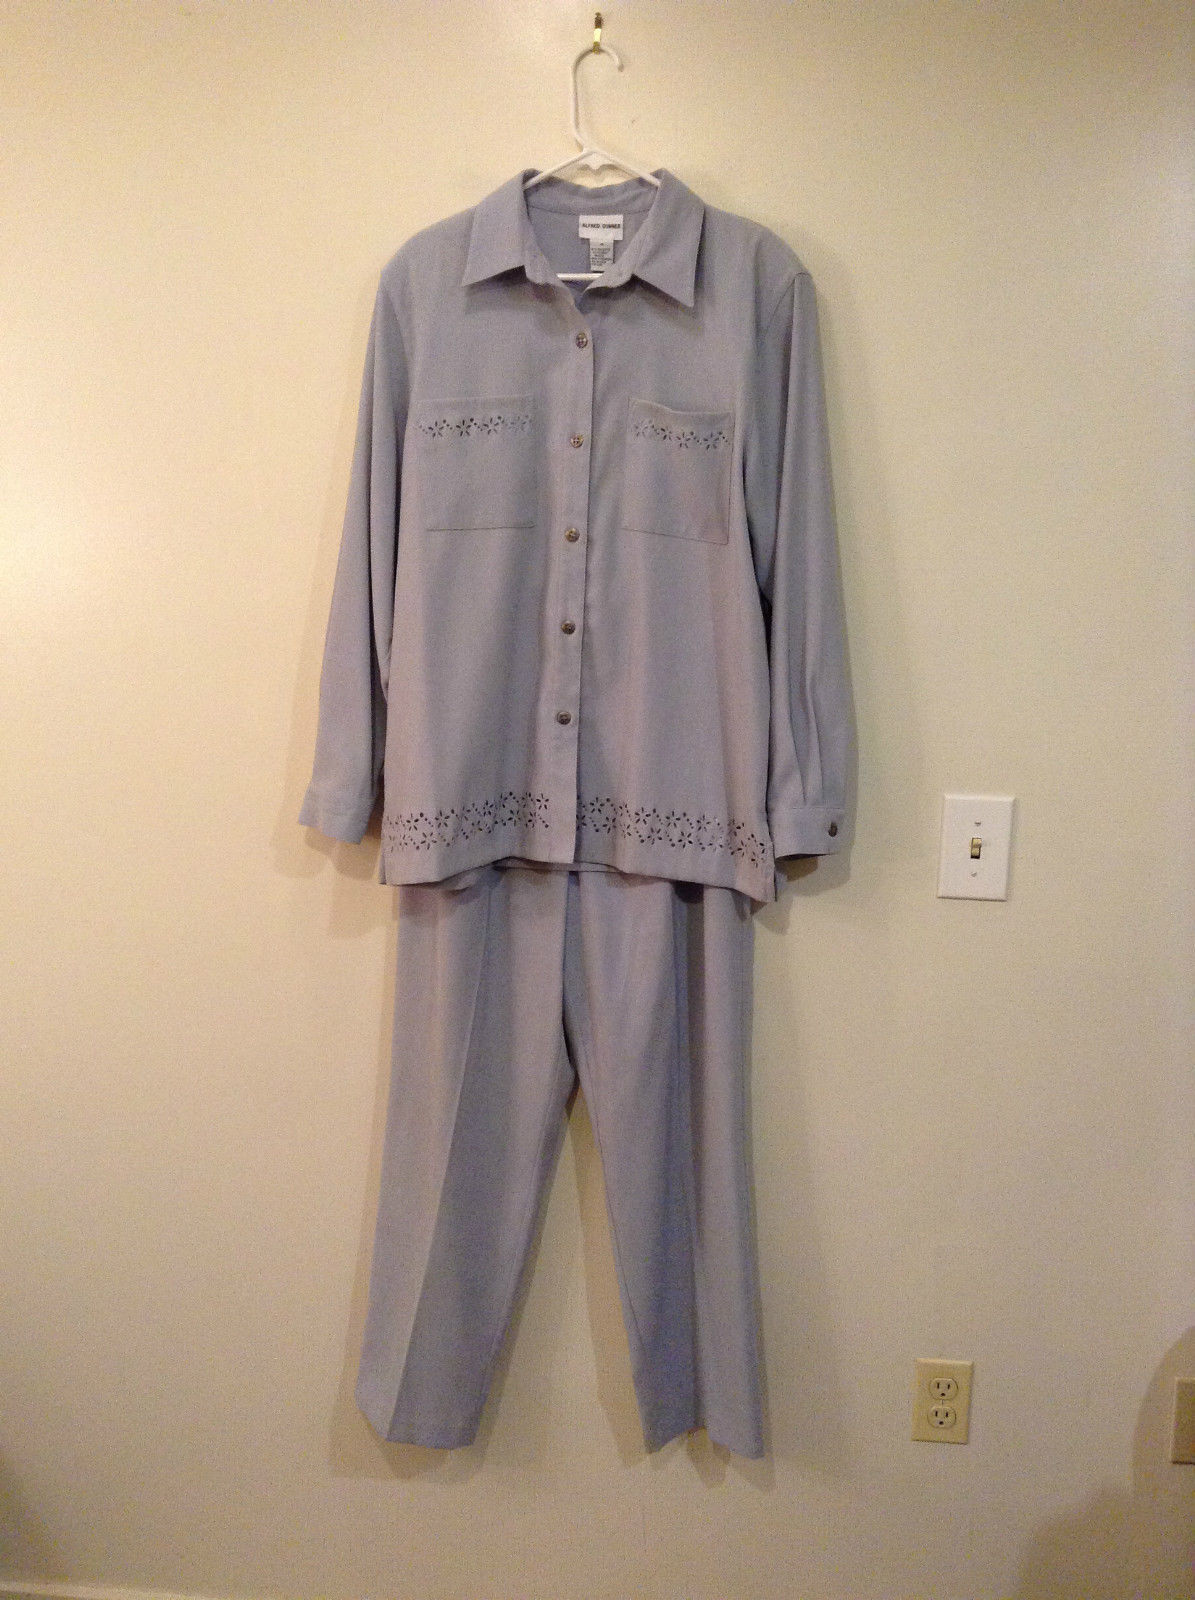 Light Blue Alfred Dunner Jacket and Pant Set Decorative Flower Cutouts Size 16